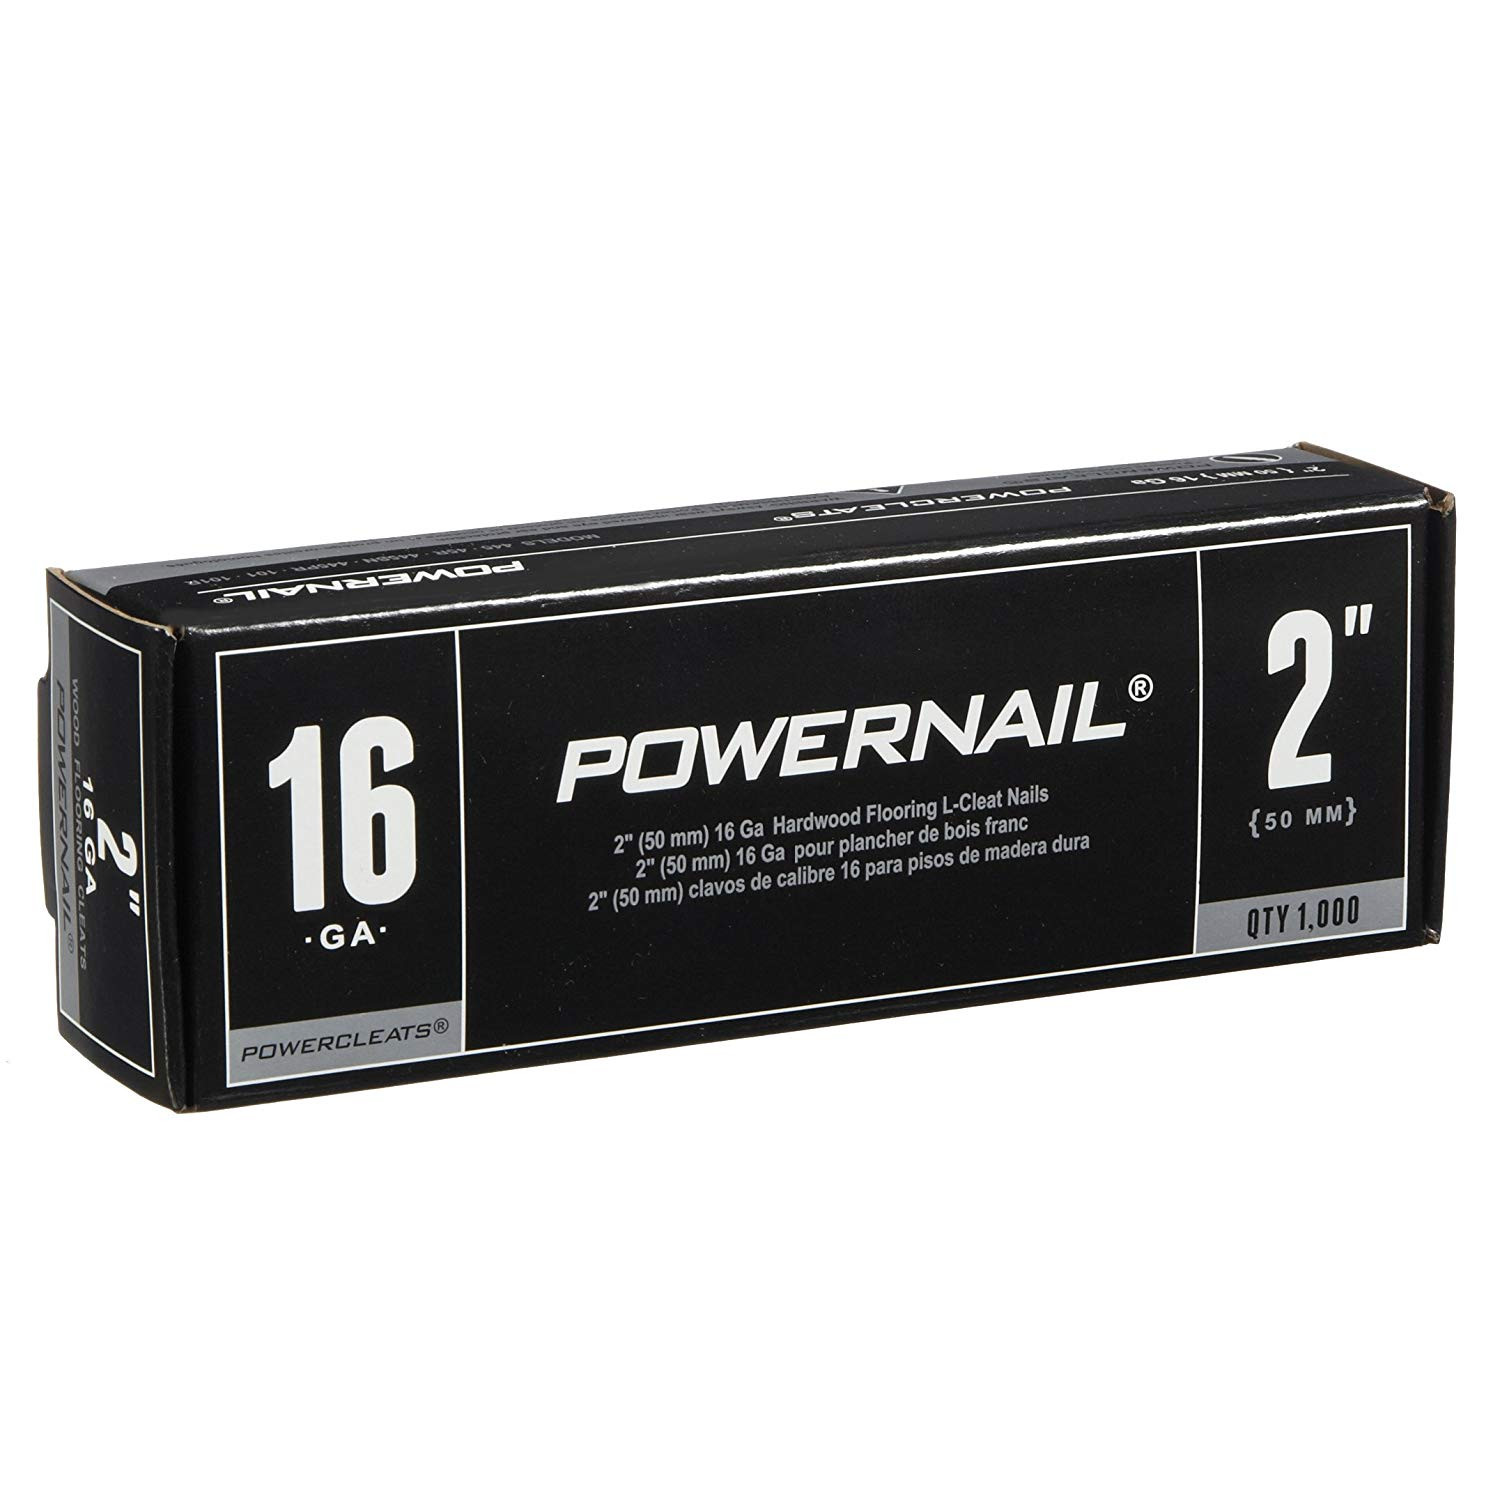 hardwood flooring installation alpharetta ga of amazon com powernail powercleat 16ga 2 l cleat box of 5000 home intended for amazon com powernail powercleat 16ga 2 l cleat box of 5000 home improvement